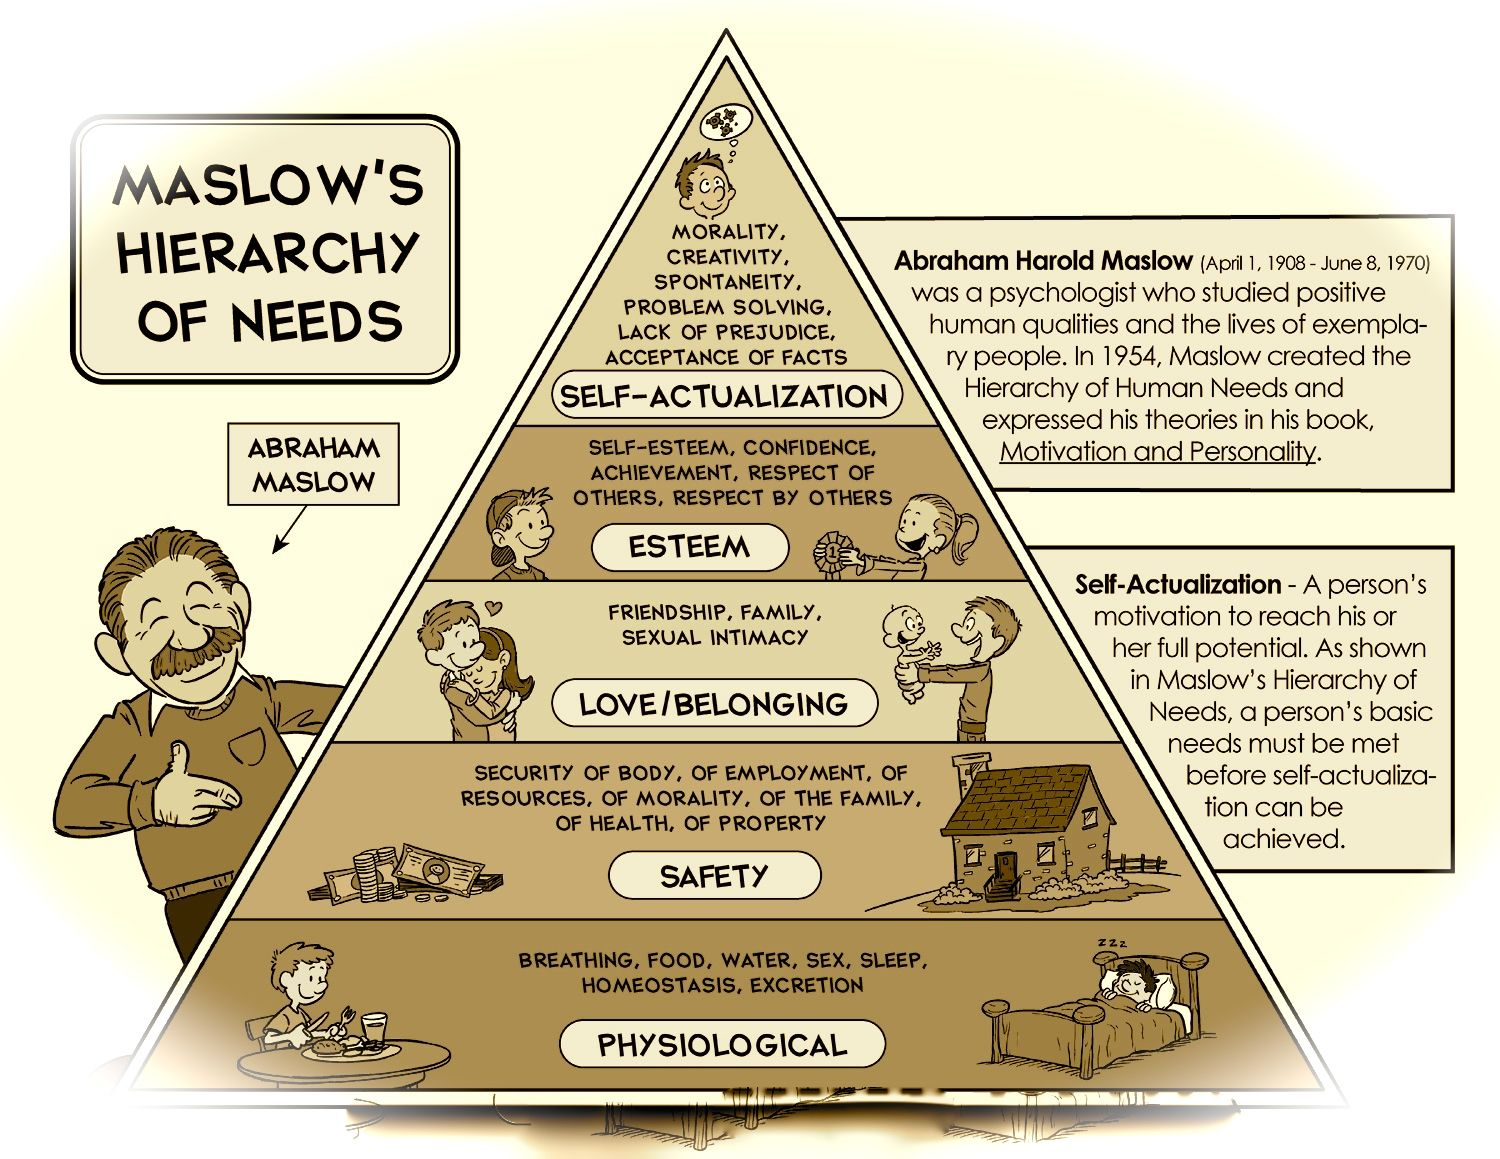 maslows-hierarchy-of-needs1 (1)